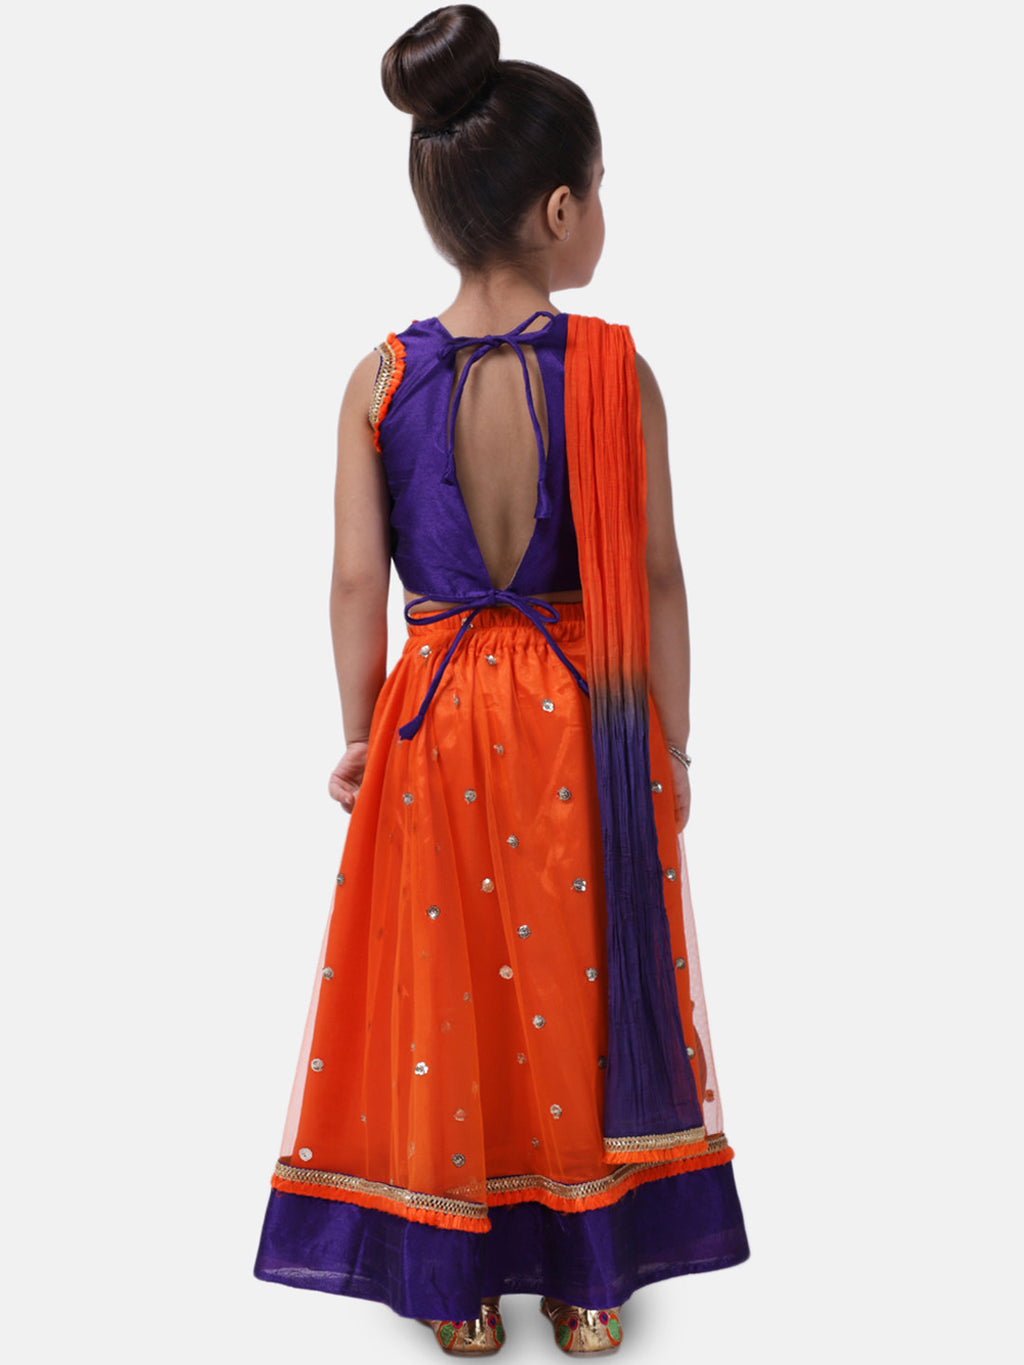 Sequin Net Lehenga Choli For Baby Girl- Orange